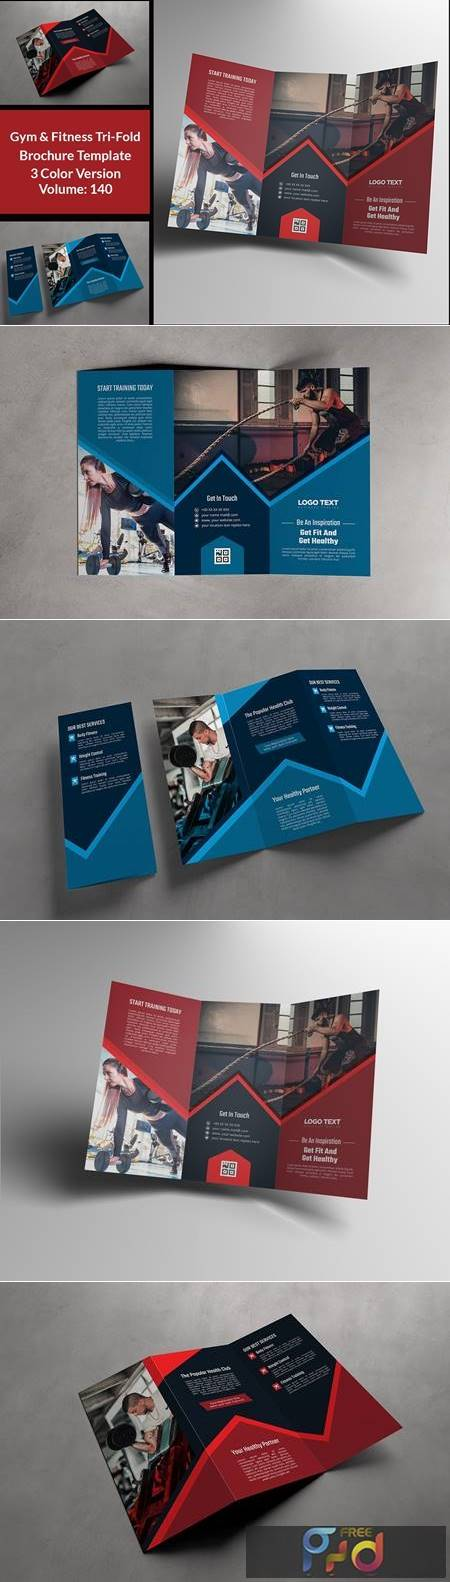 Fitness Gym Trifold Brochure 4664169 1